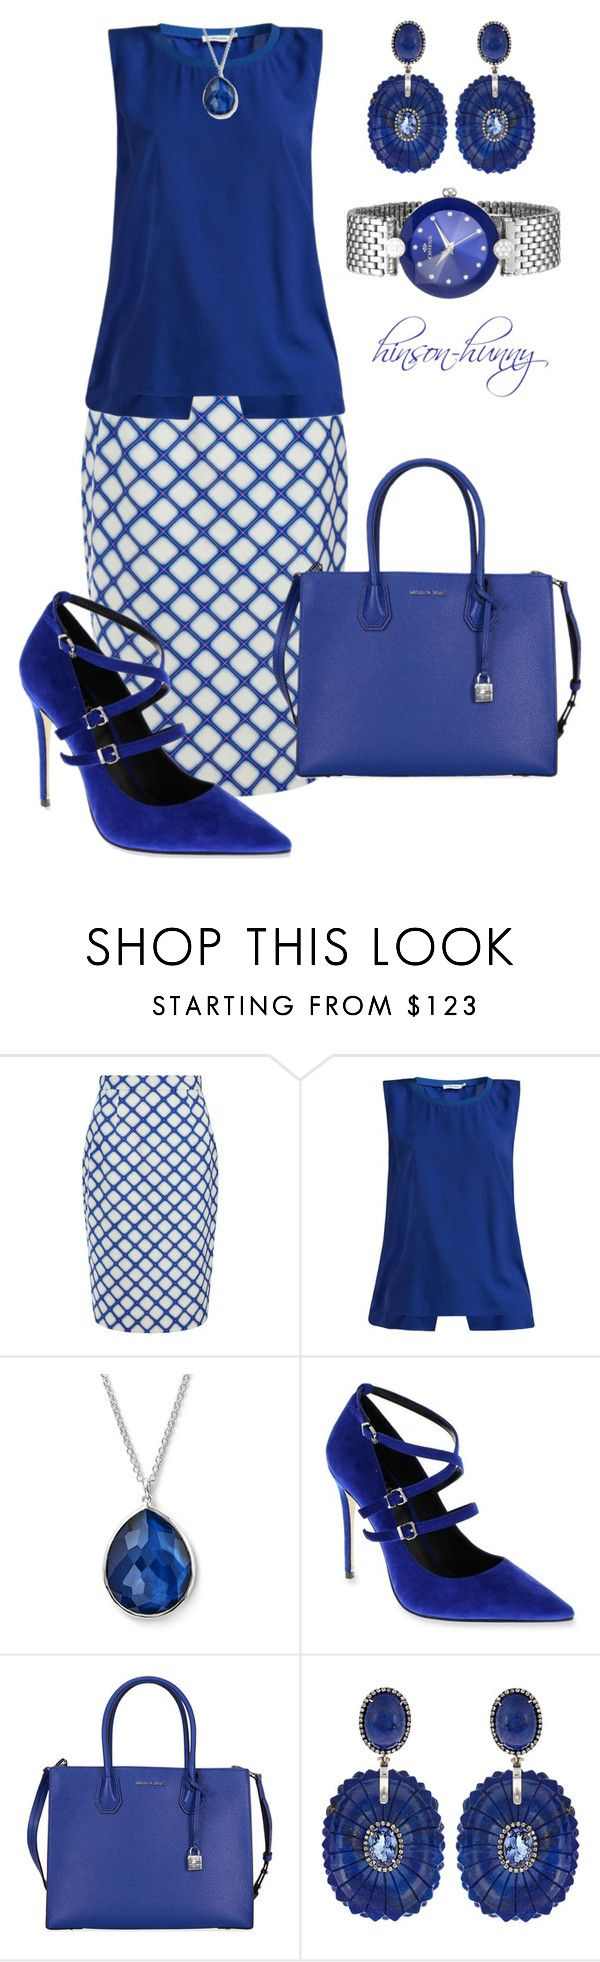 """""""Blueberry muffin"""" by hinson-hunny ❤ liked on Polyvore featuring Jonathan Saunders, J.Lindeberg, Ippolita, Nicole Miller, Michael Kors and Silvia Furmanovich"""